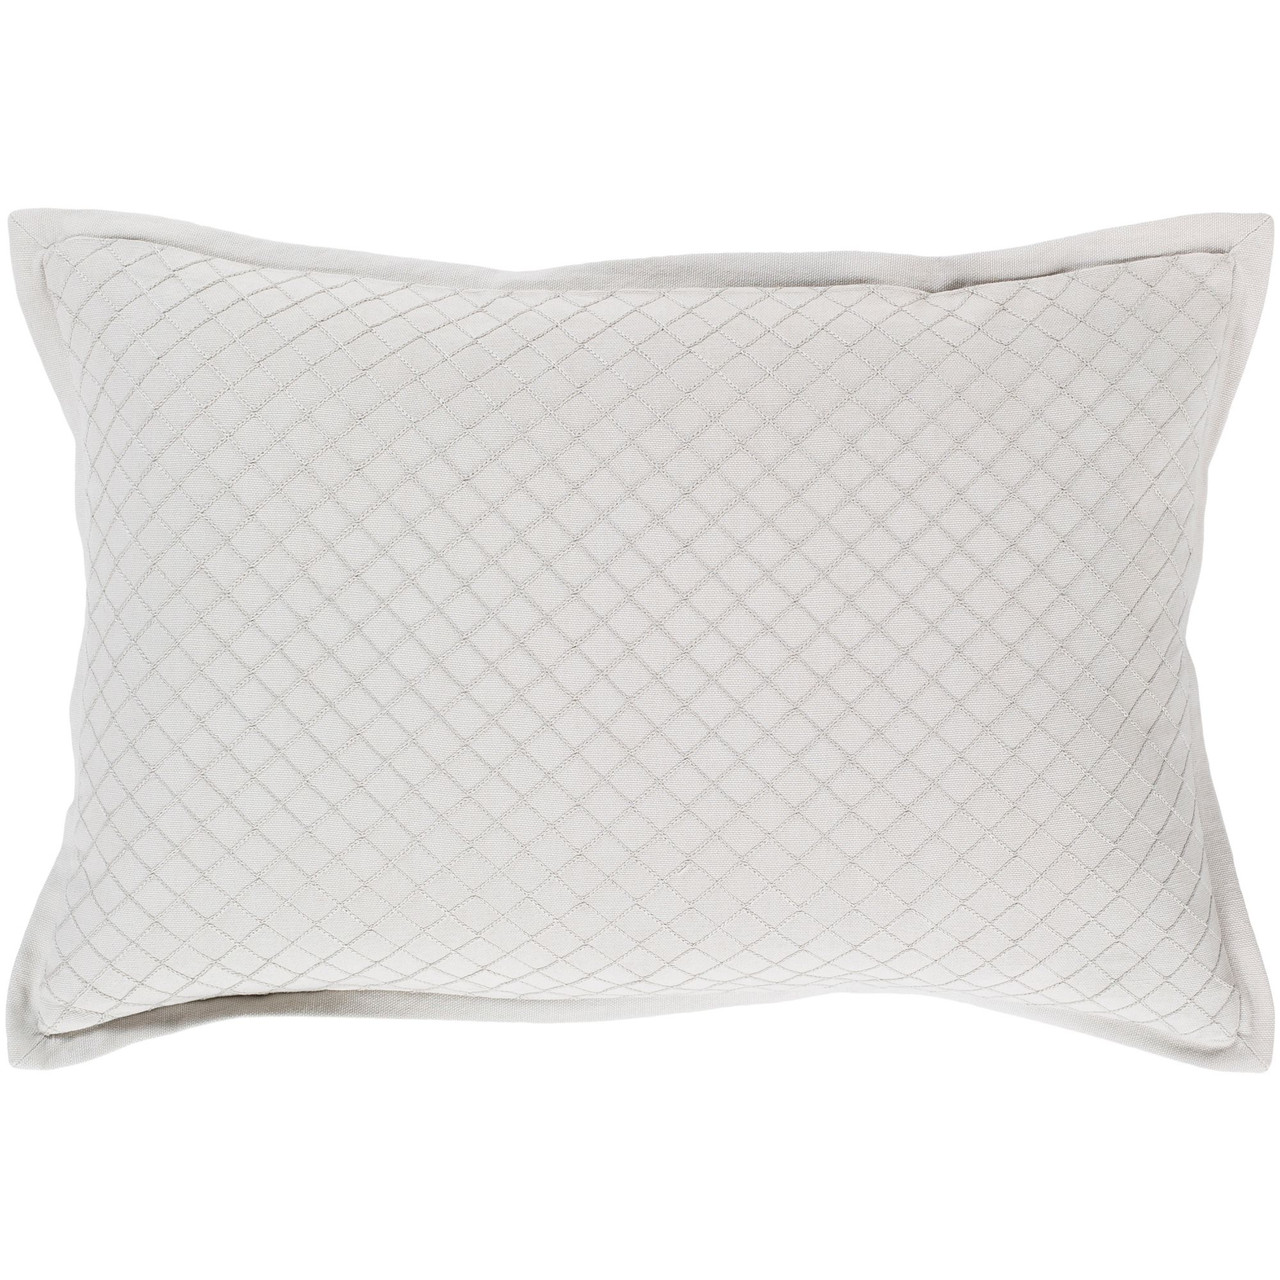 19 Pale Green Weave Patterned Rectangular Throw Pillow Cover With Flange Edge Christmas Central